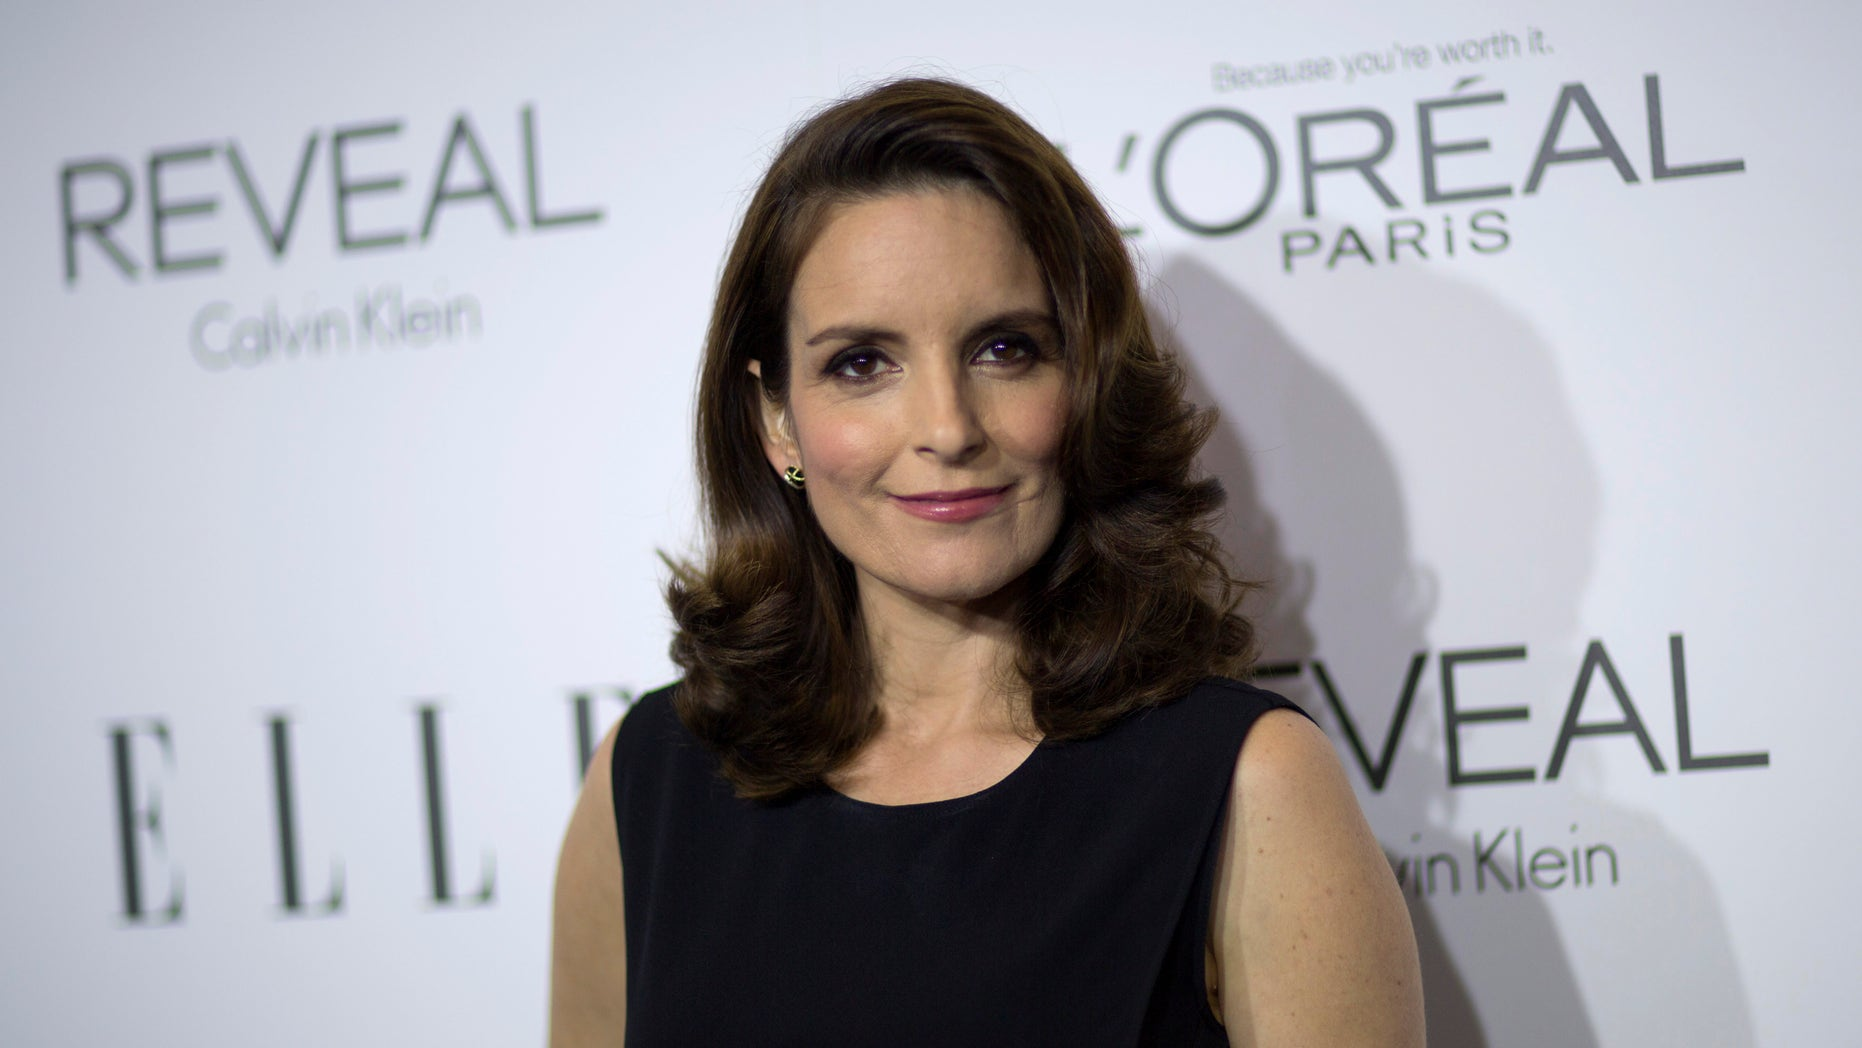 October 20, 2014. Actress and honoree Tina Fey poses at the 21st annual ELLE Women in Hollywood Awards in Los Angeles.